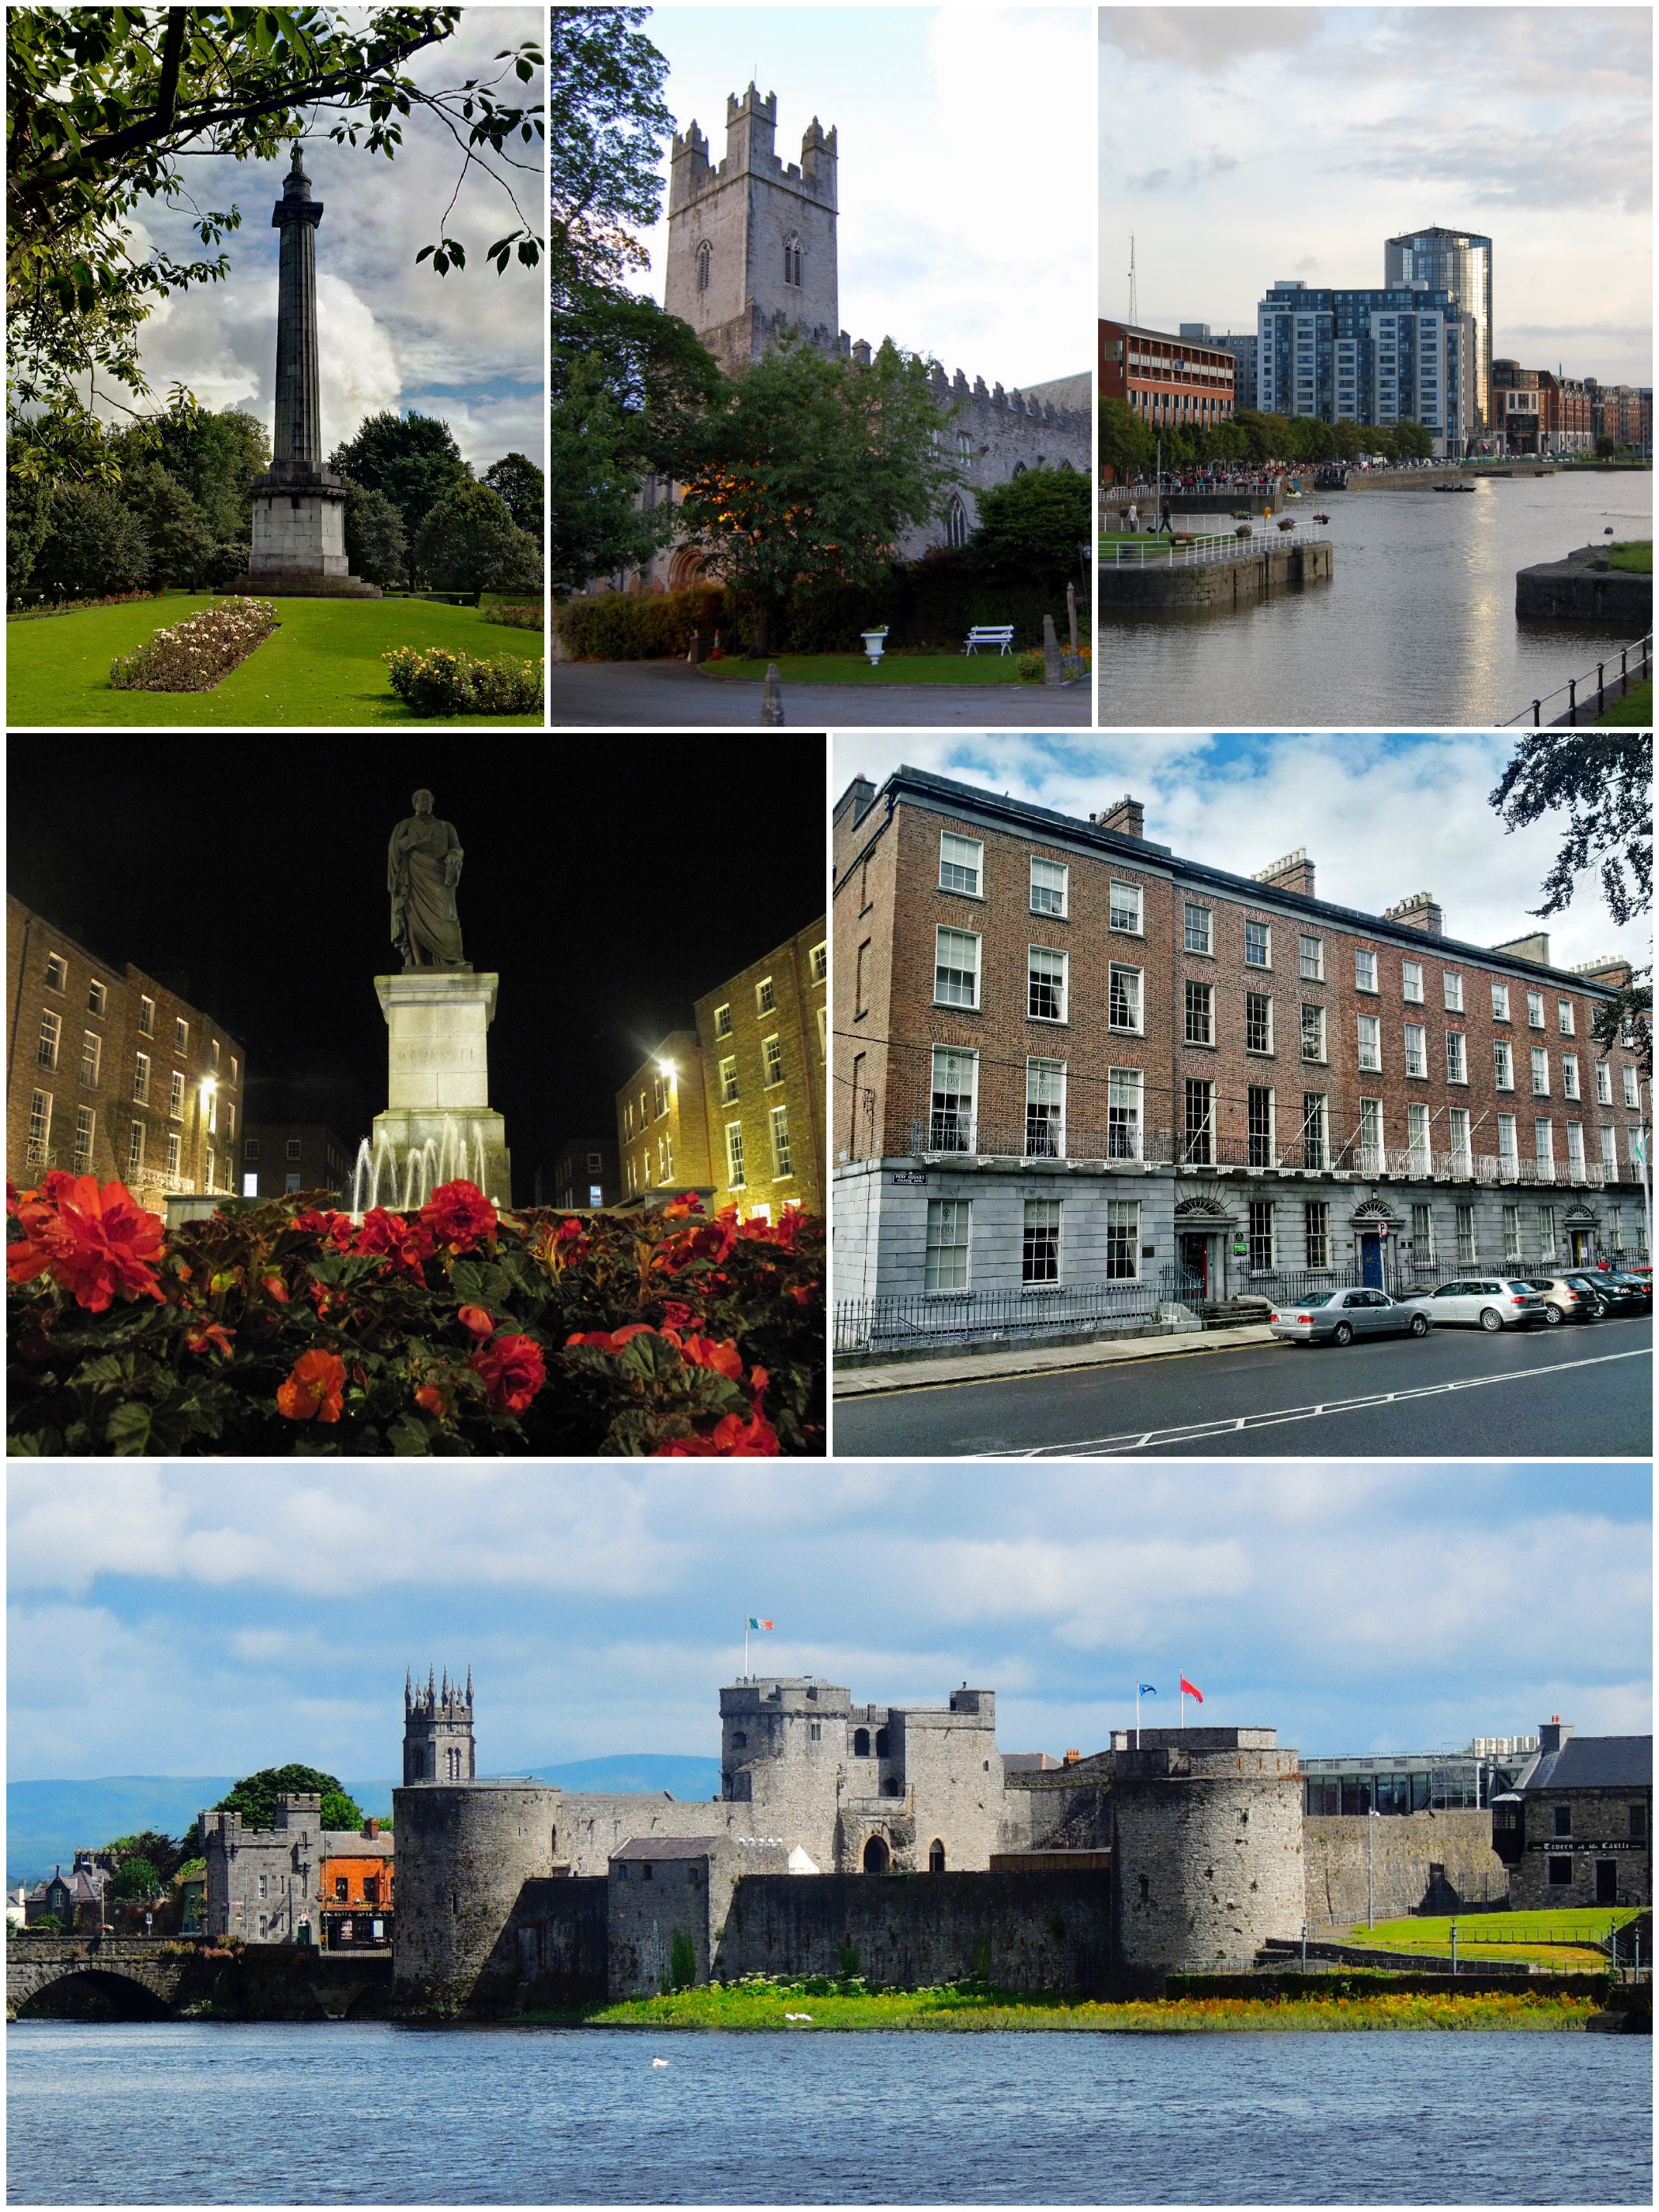 History of Cork - Wikipedia